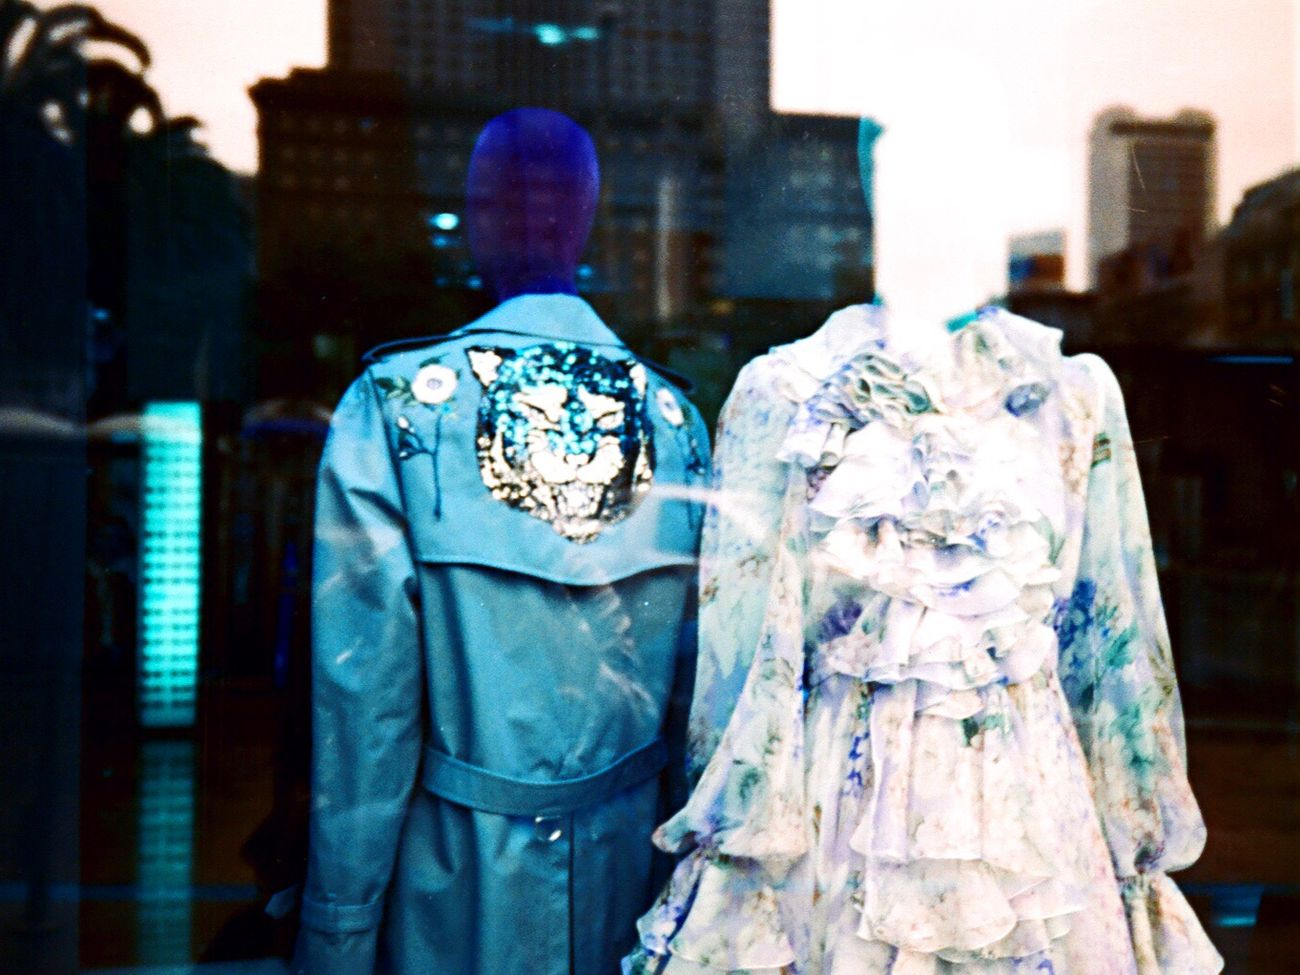 Koduckgirl Film Film Photography Lomography Lomo Turquoise NATURA Classica Clothes Store Window